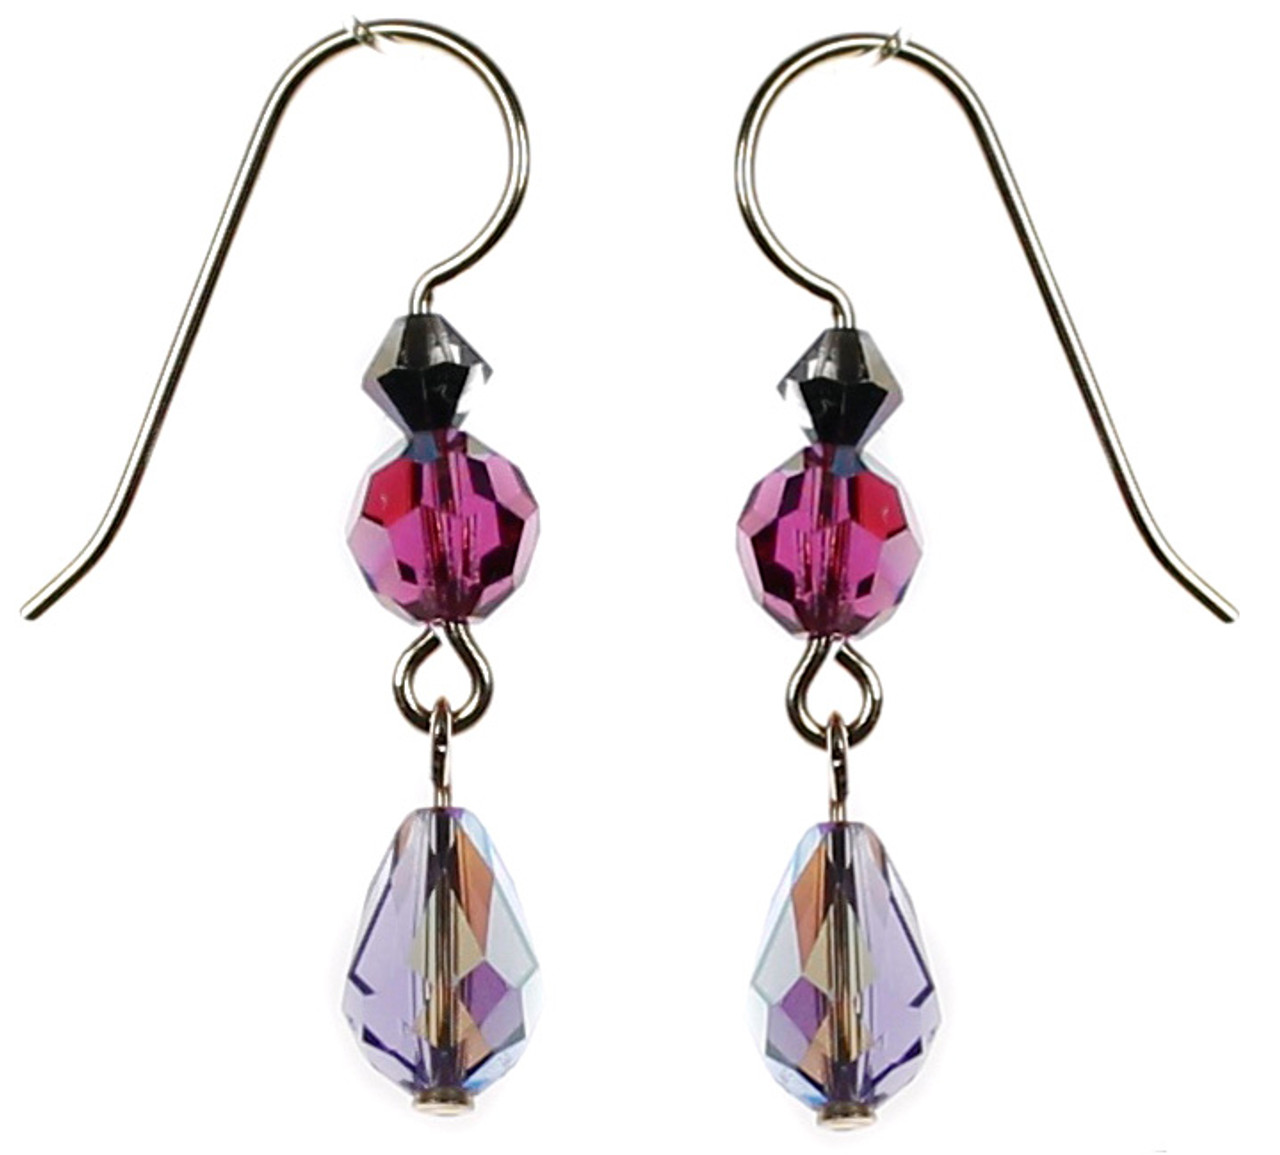 77641a829 Purple crystal earrings made with Swarovski crystal and 14K gold filled by  The Karen Curtis Company